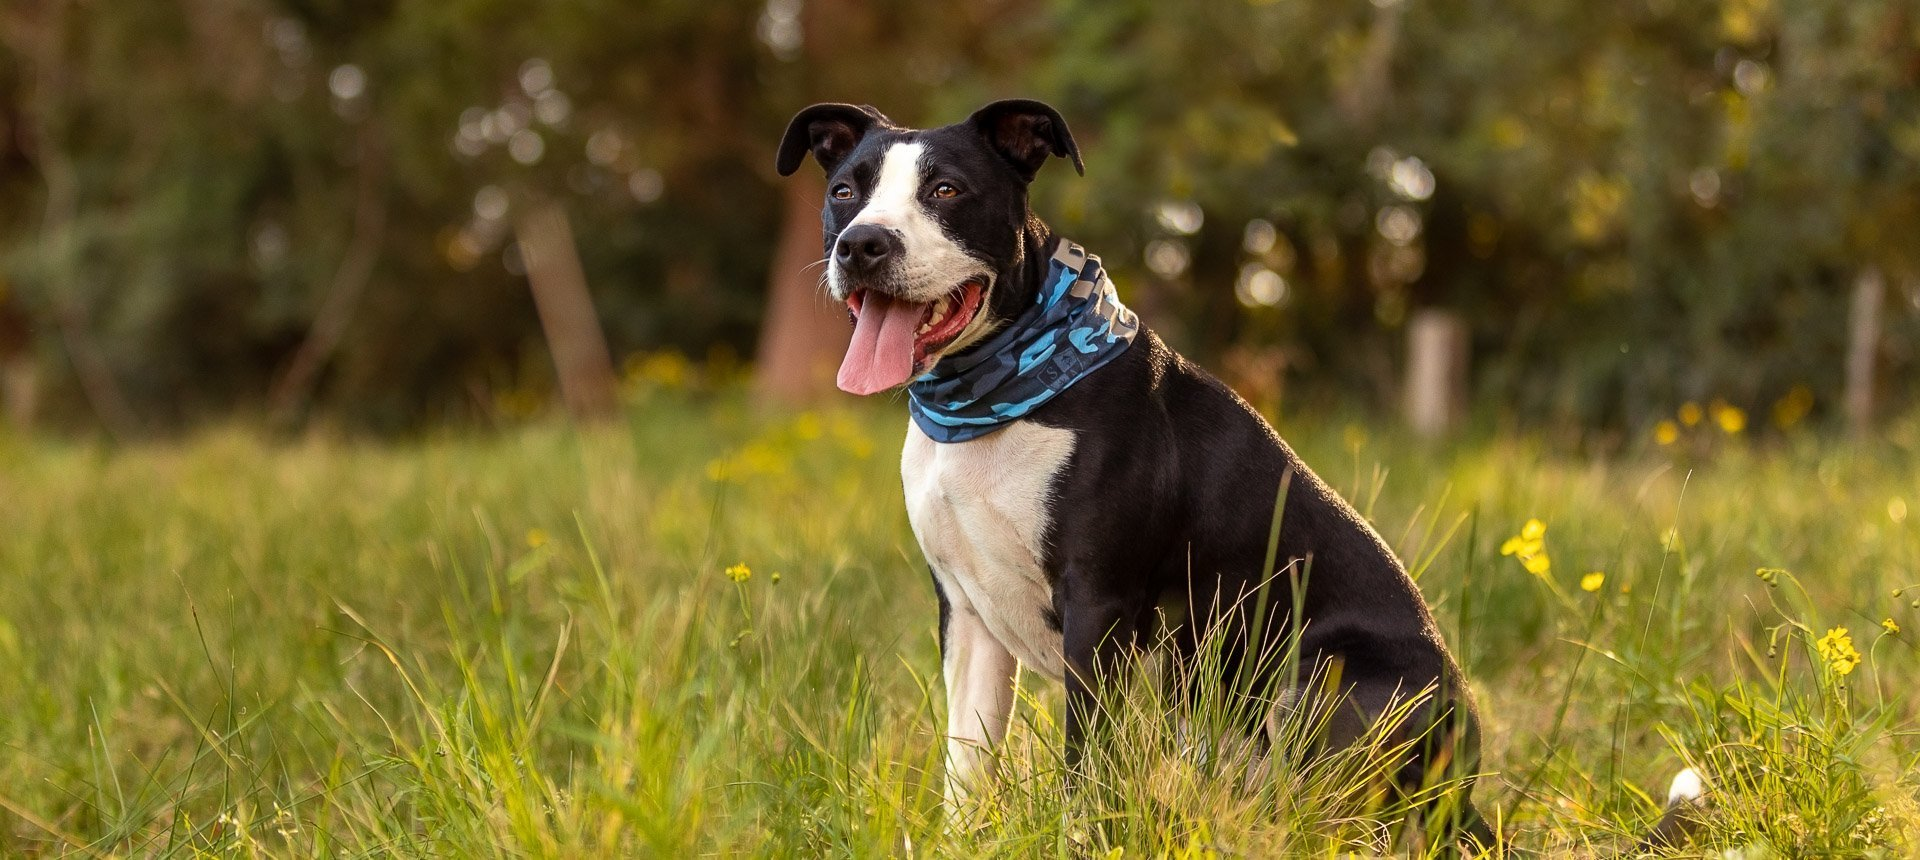 8quick tips to help you prepare your dog for their photo session